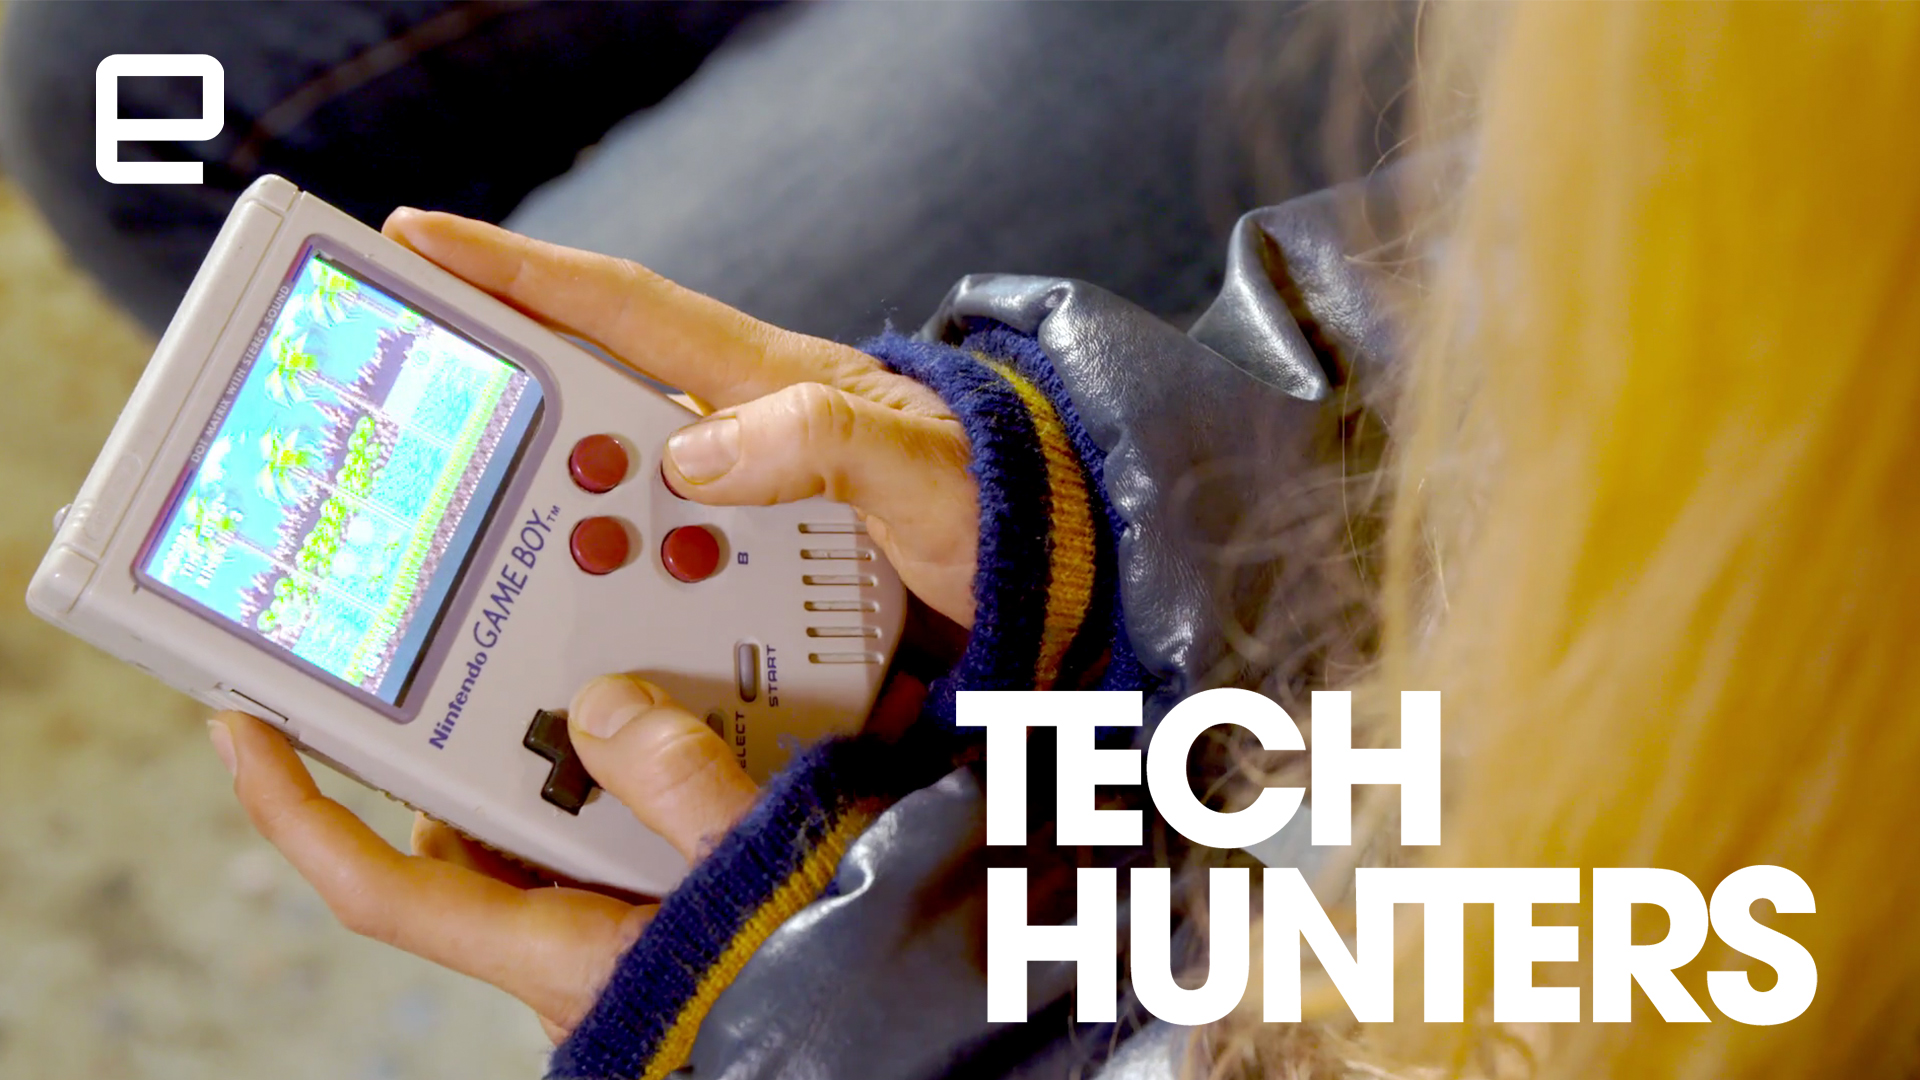 Tech Hunters: Opening up new